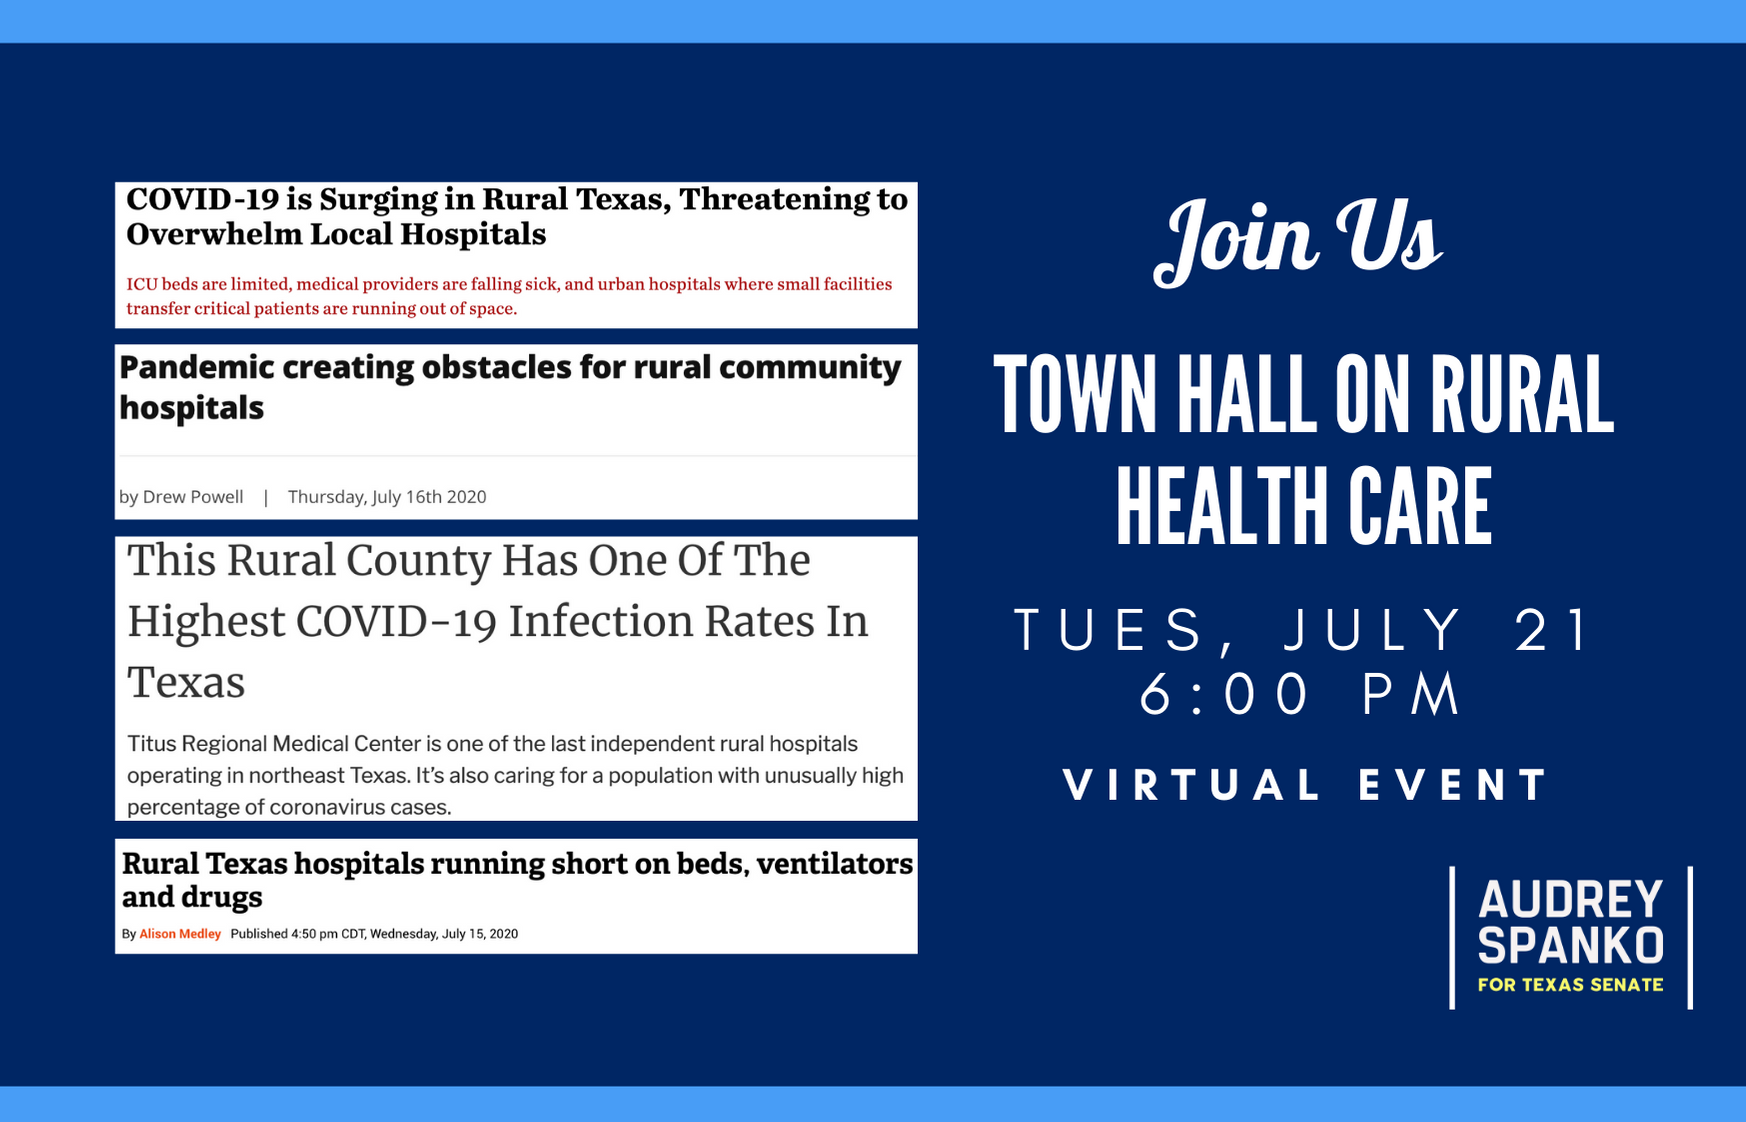 Town Hall On Rural Health Care Audrey Spanko For Texas Senate Spanko.net at press about us. mobilize us